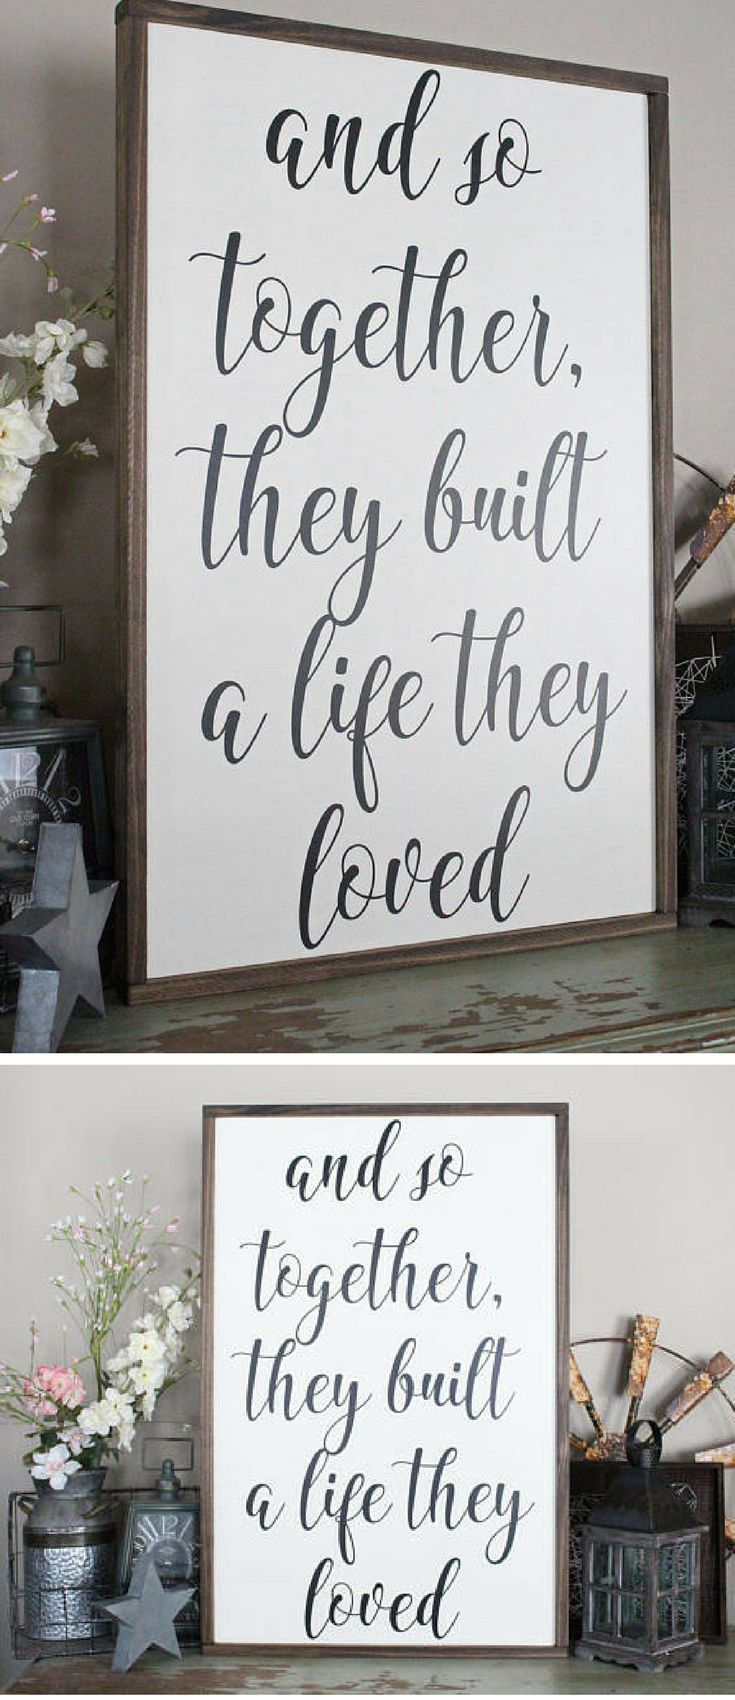 Wedding bedroom decoration ideas  And So Together They Built A Life They Loved Wood Sign Framed Sign